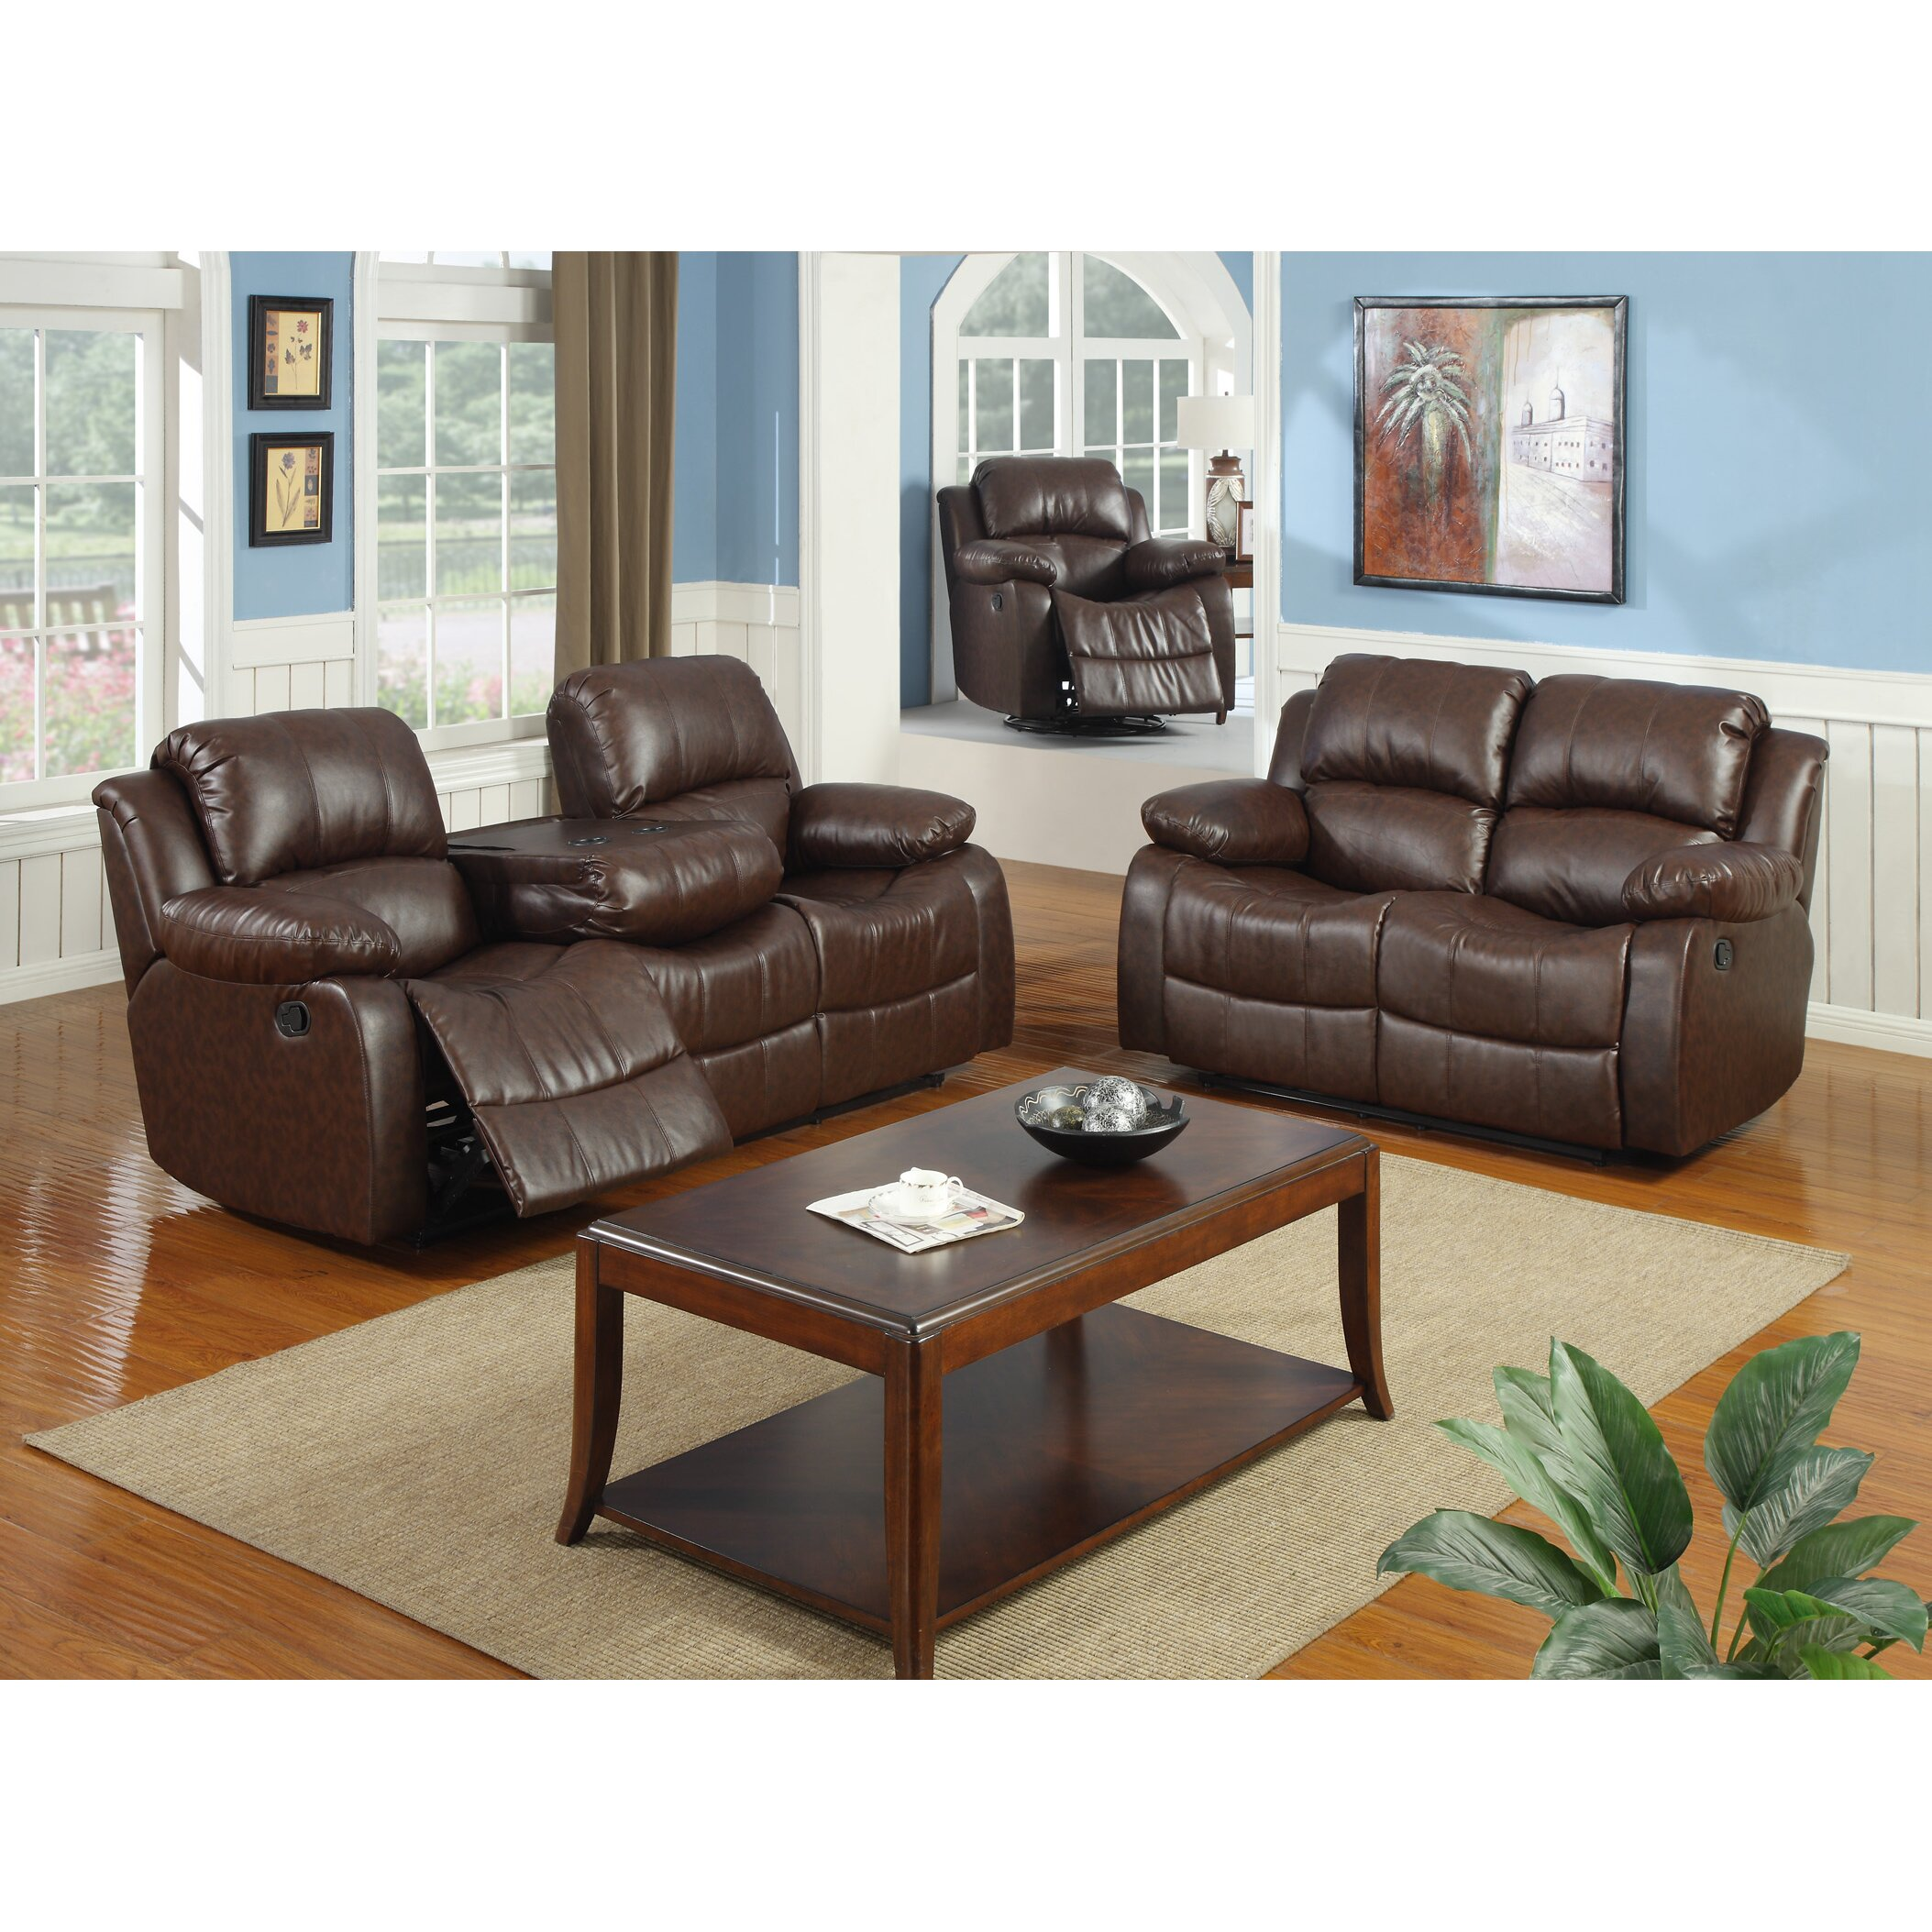 Best quality furniture bonded leather 3 piece recliner for Best sofa sets for living room